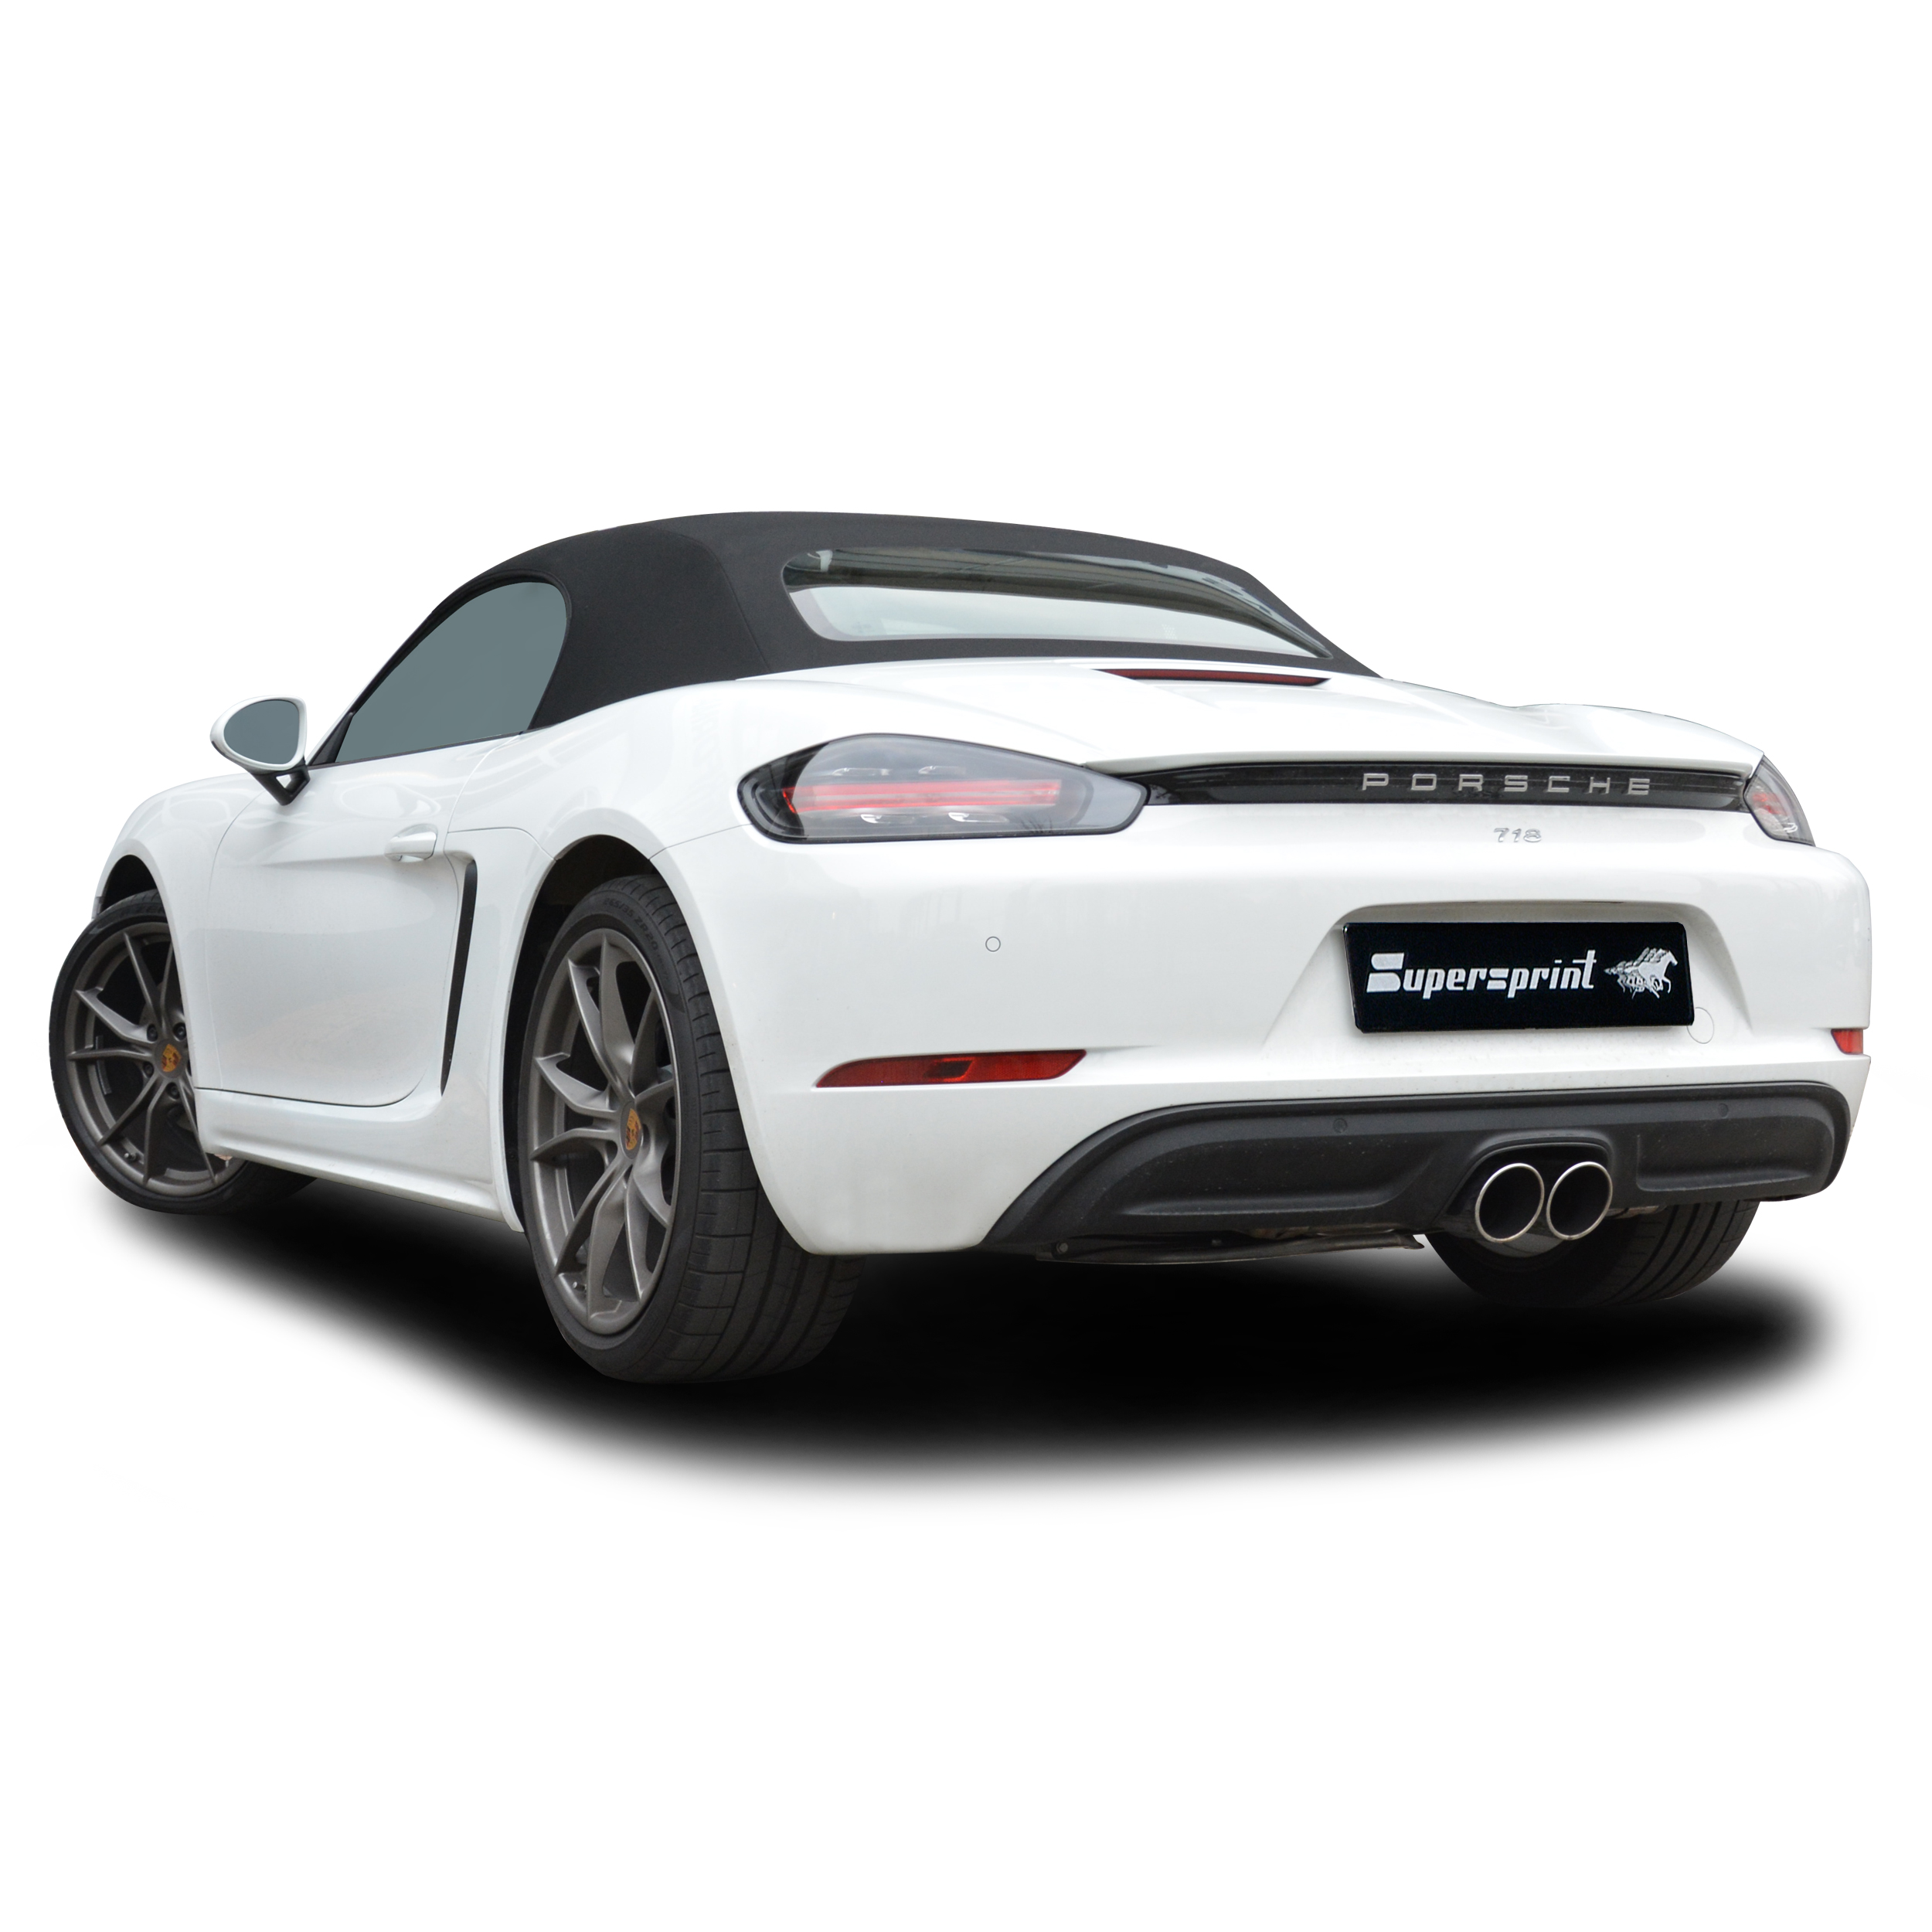 Performance Sport Exhaust For Porsche 718 Boxster S With